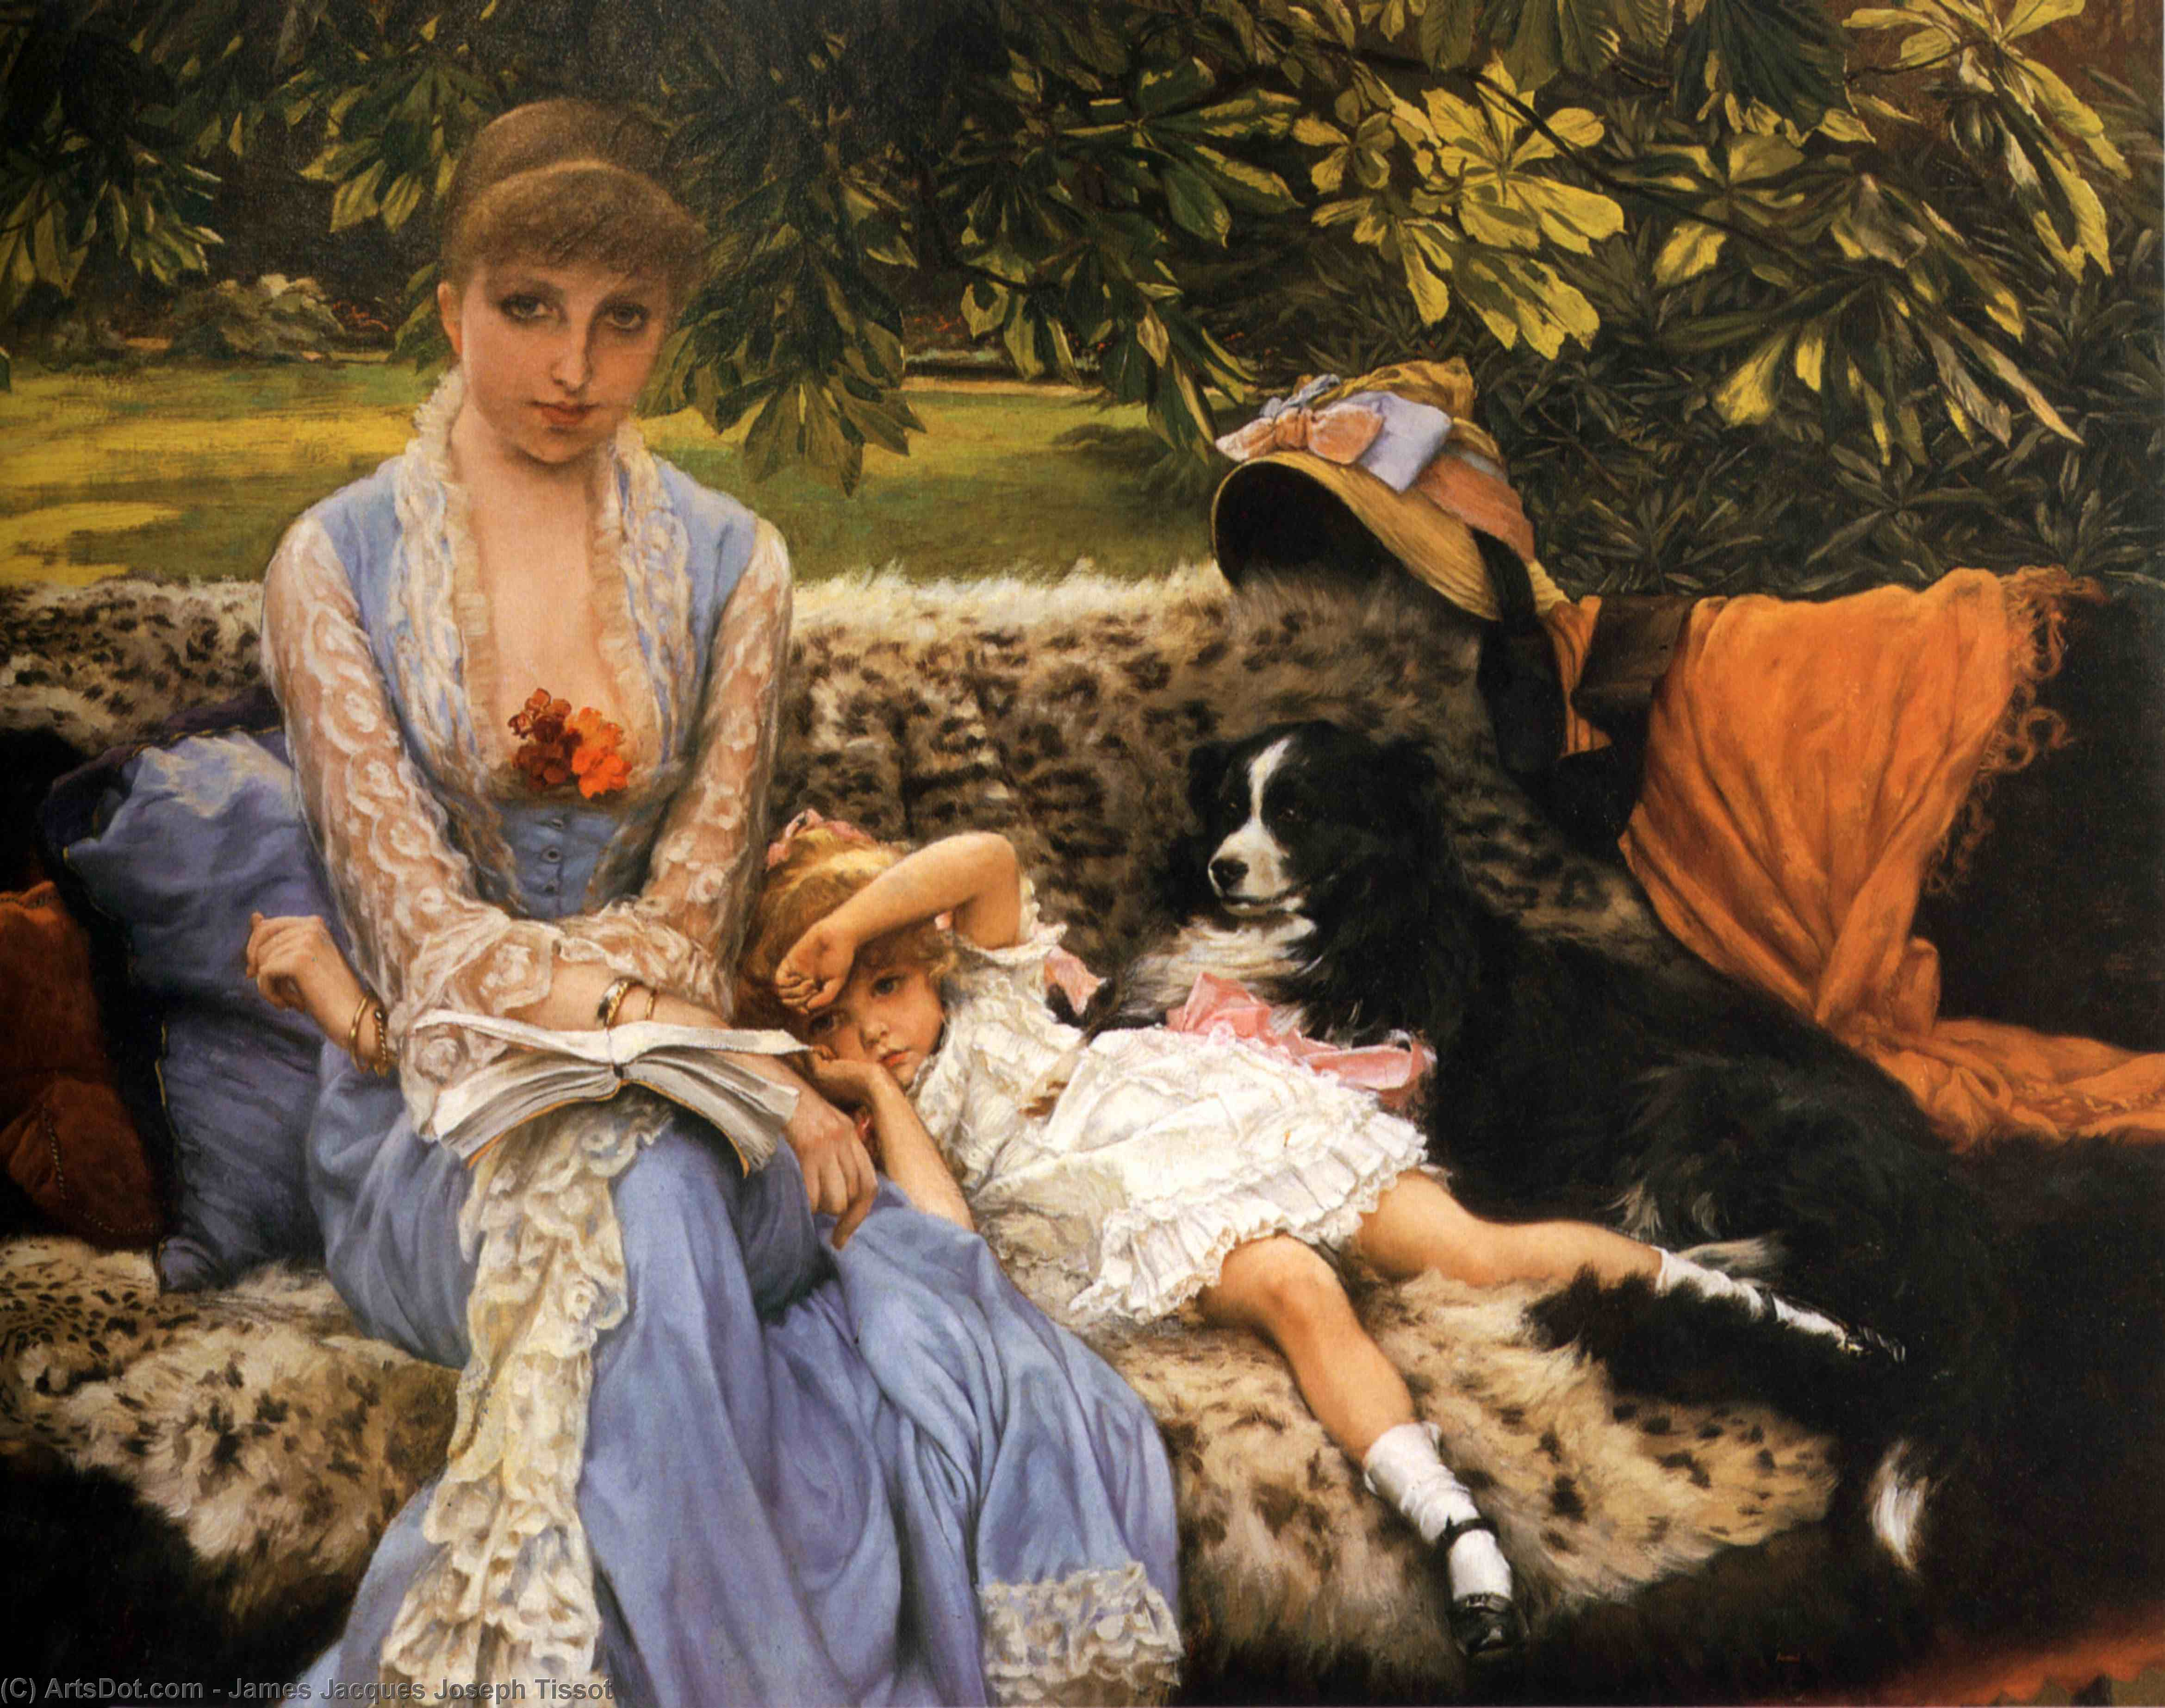 Wikioo.org - The Encyclopedia of Fine Arts - Painting, Artwork by James Jacques Joseph Tissot - Quiet